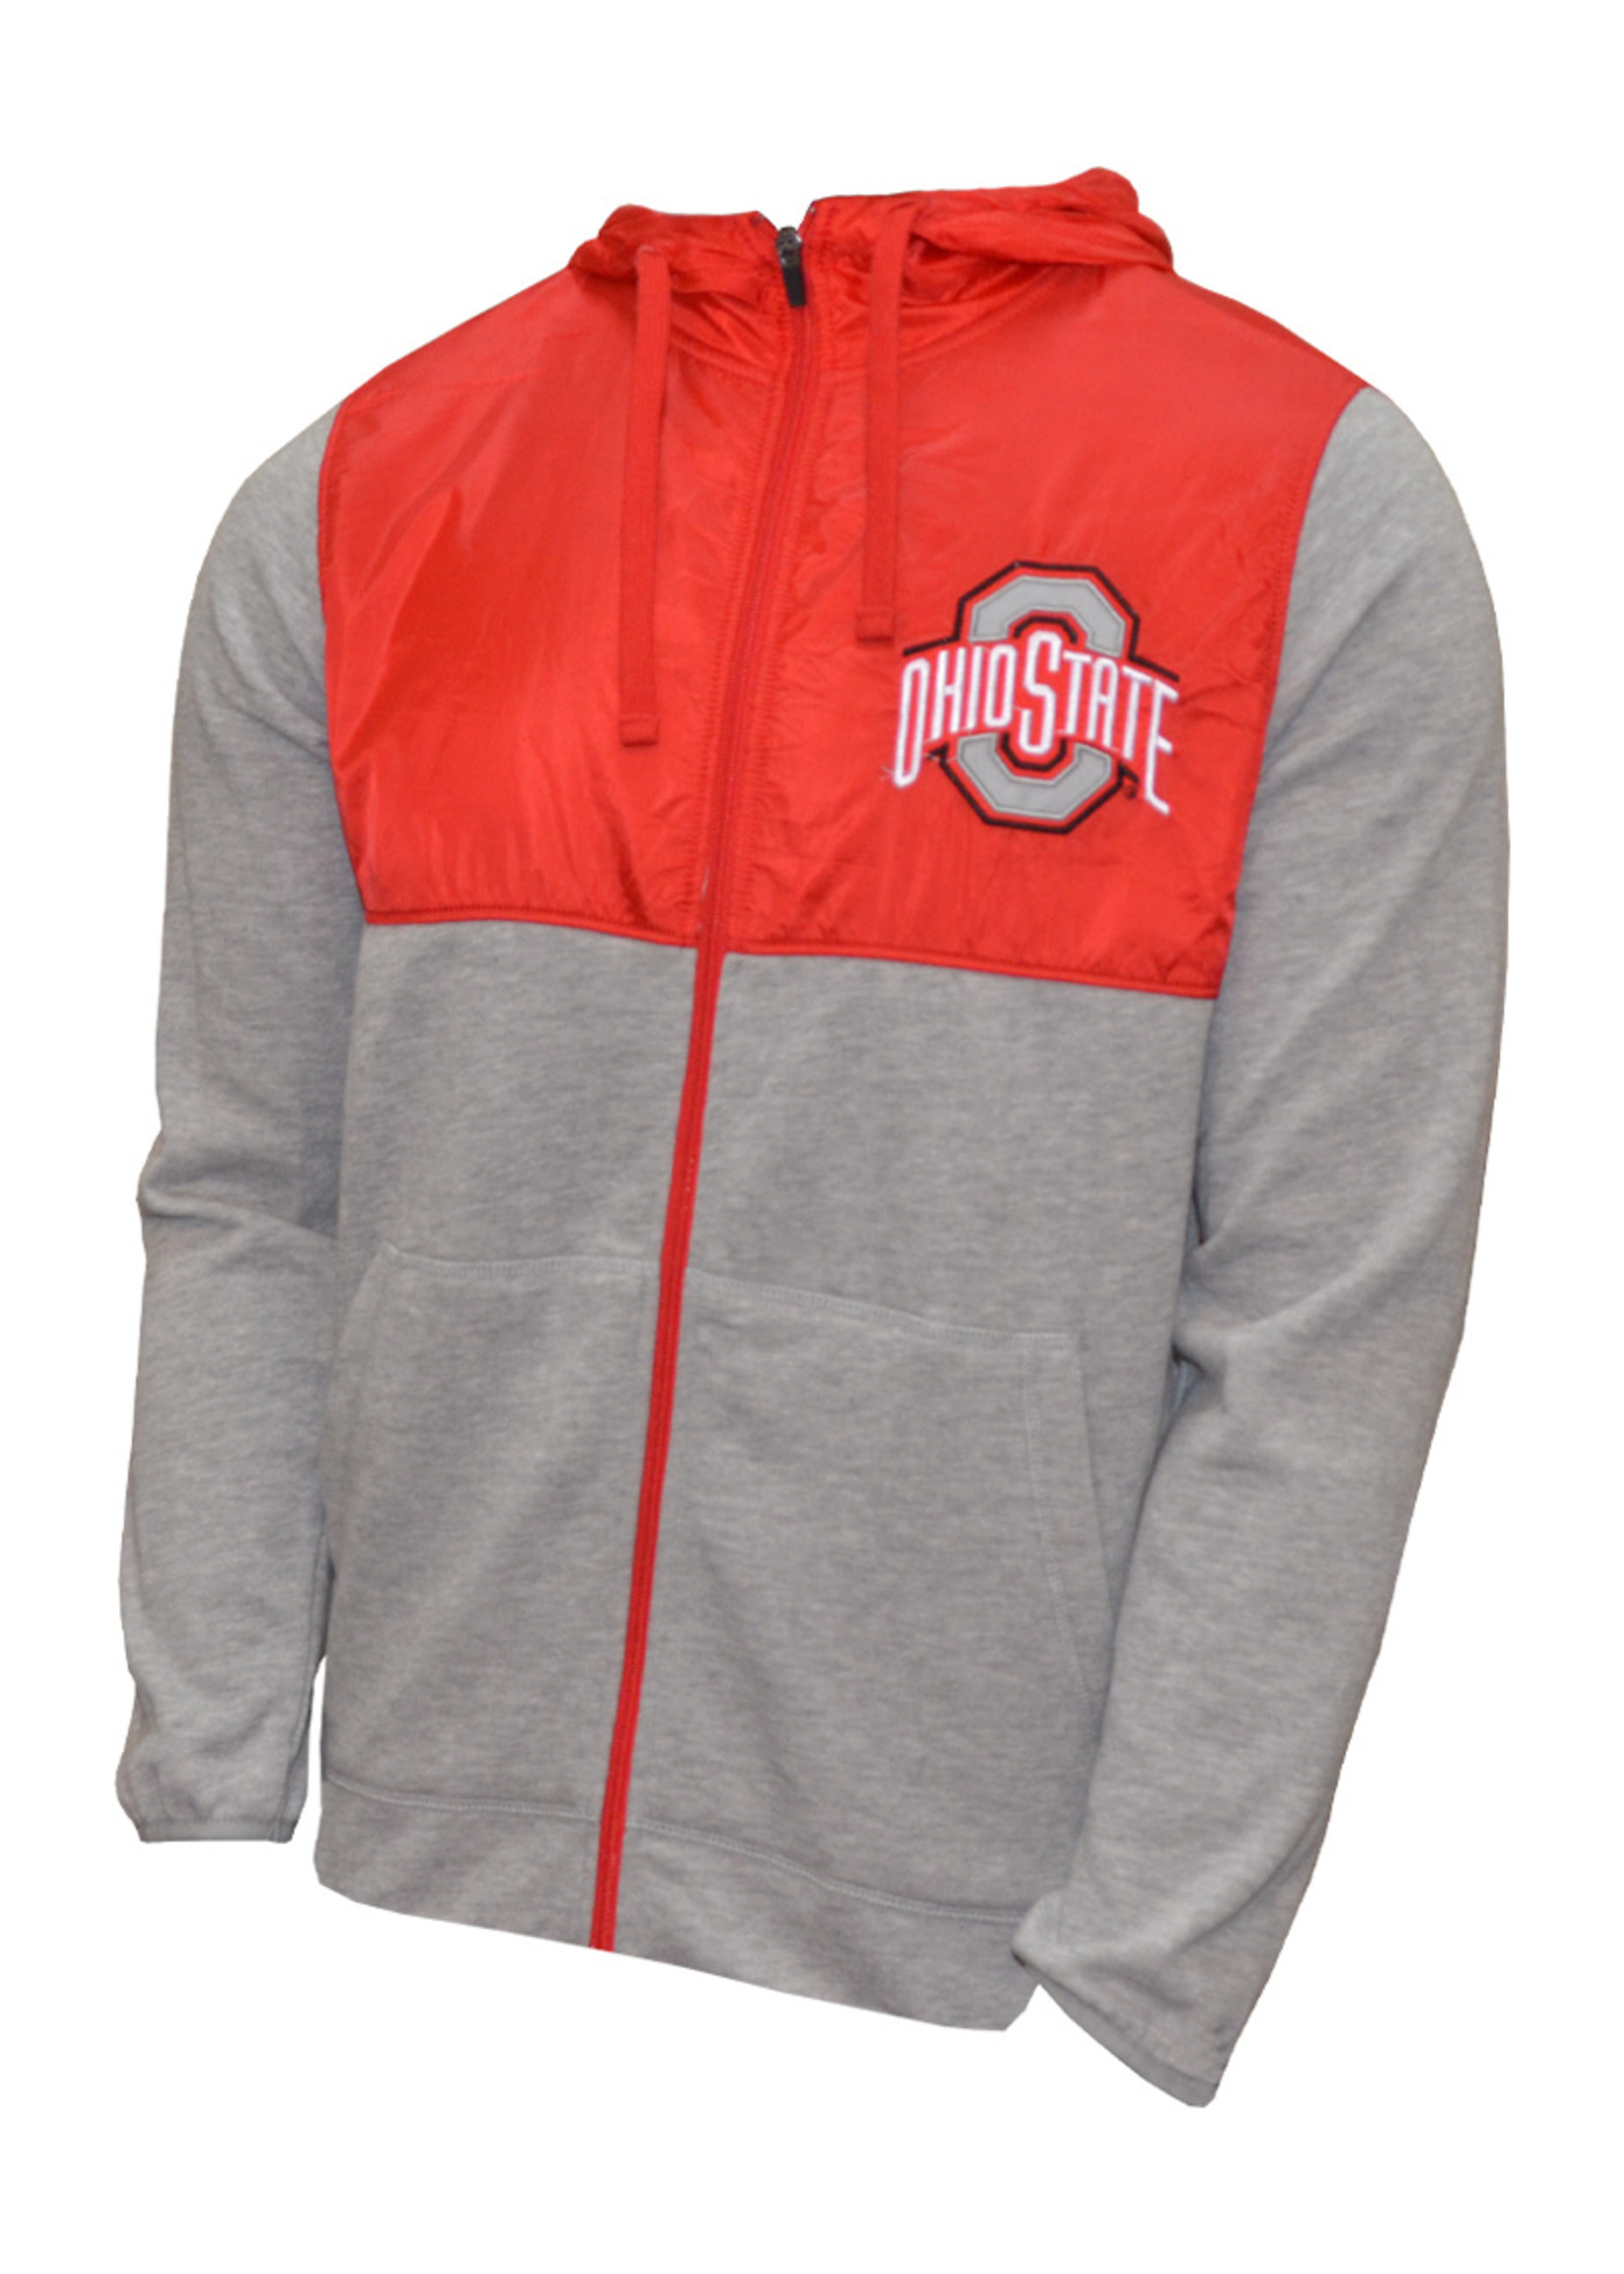 Ohio State Buckeyes Lightweight Hooded Jacket